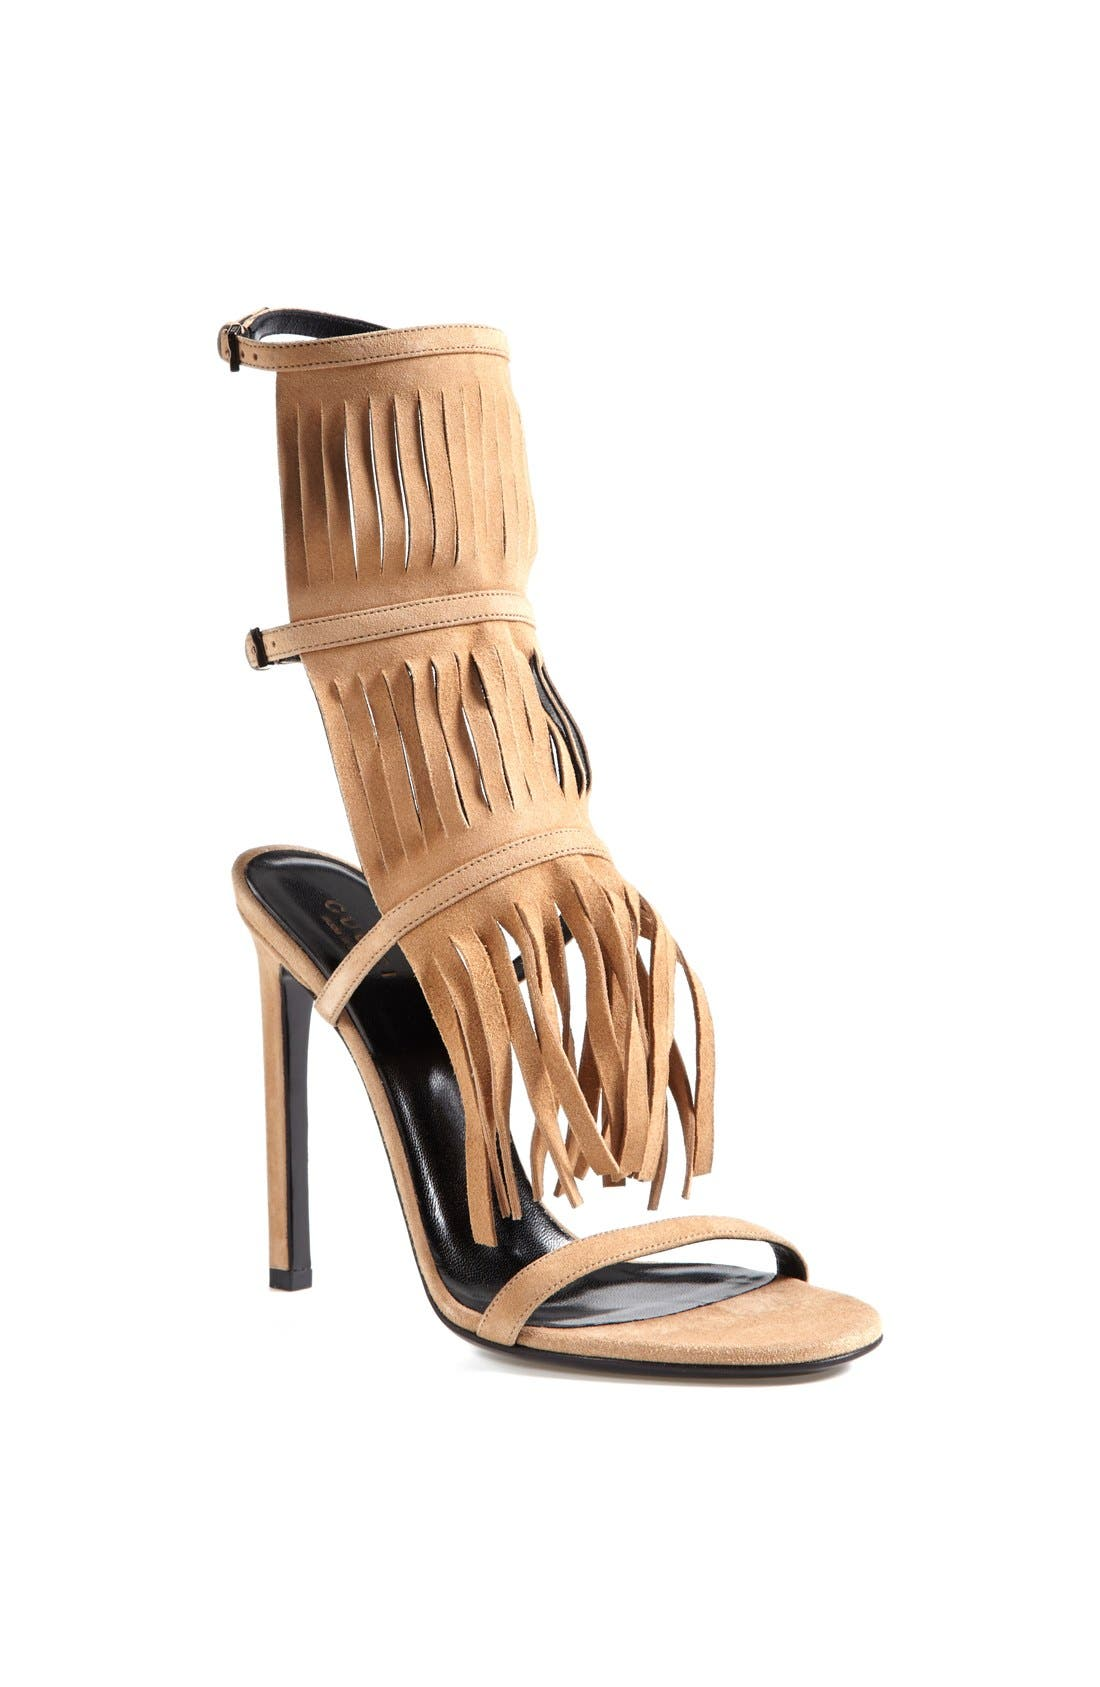 Main Image - Gucci 'Becky' Sandal